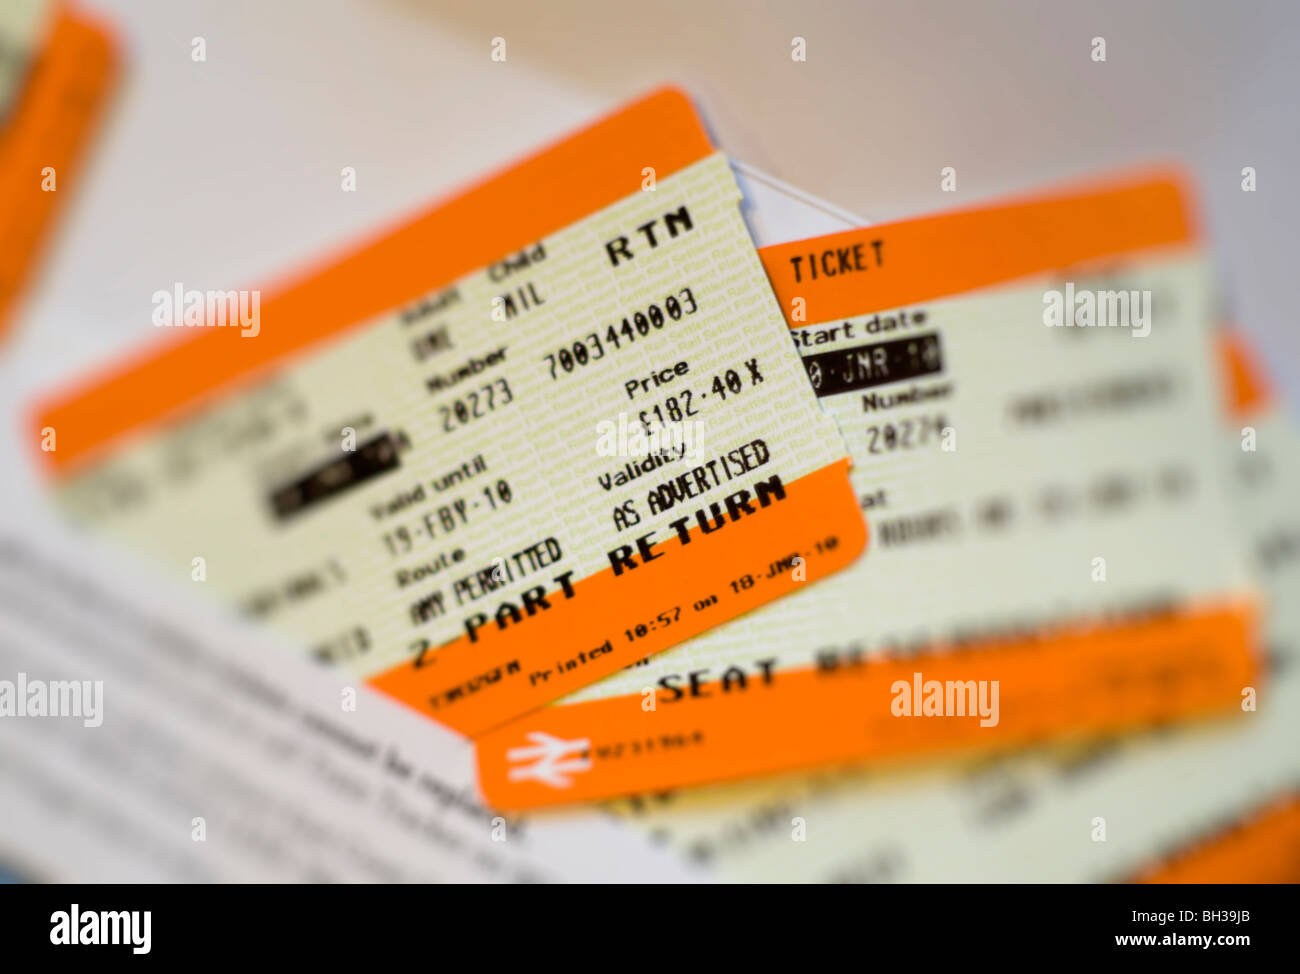 British railway return ticket from Scotland to London 2010 normal price with seat reservations - Stock Image